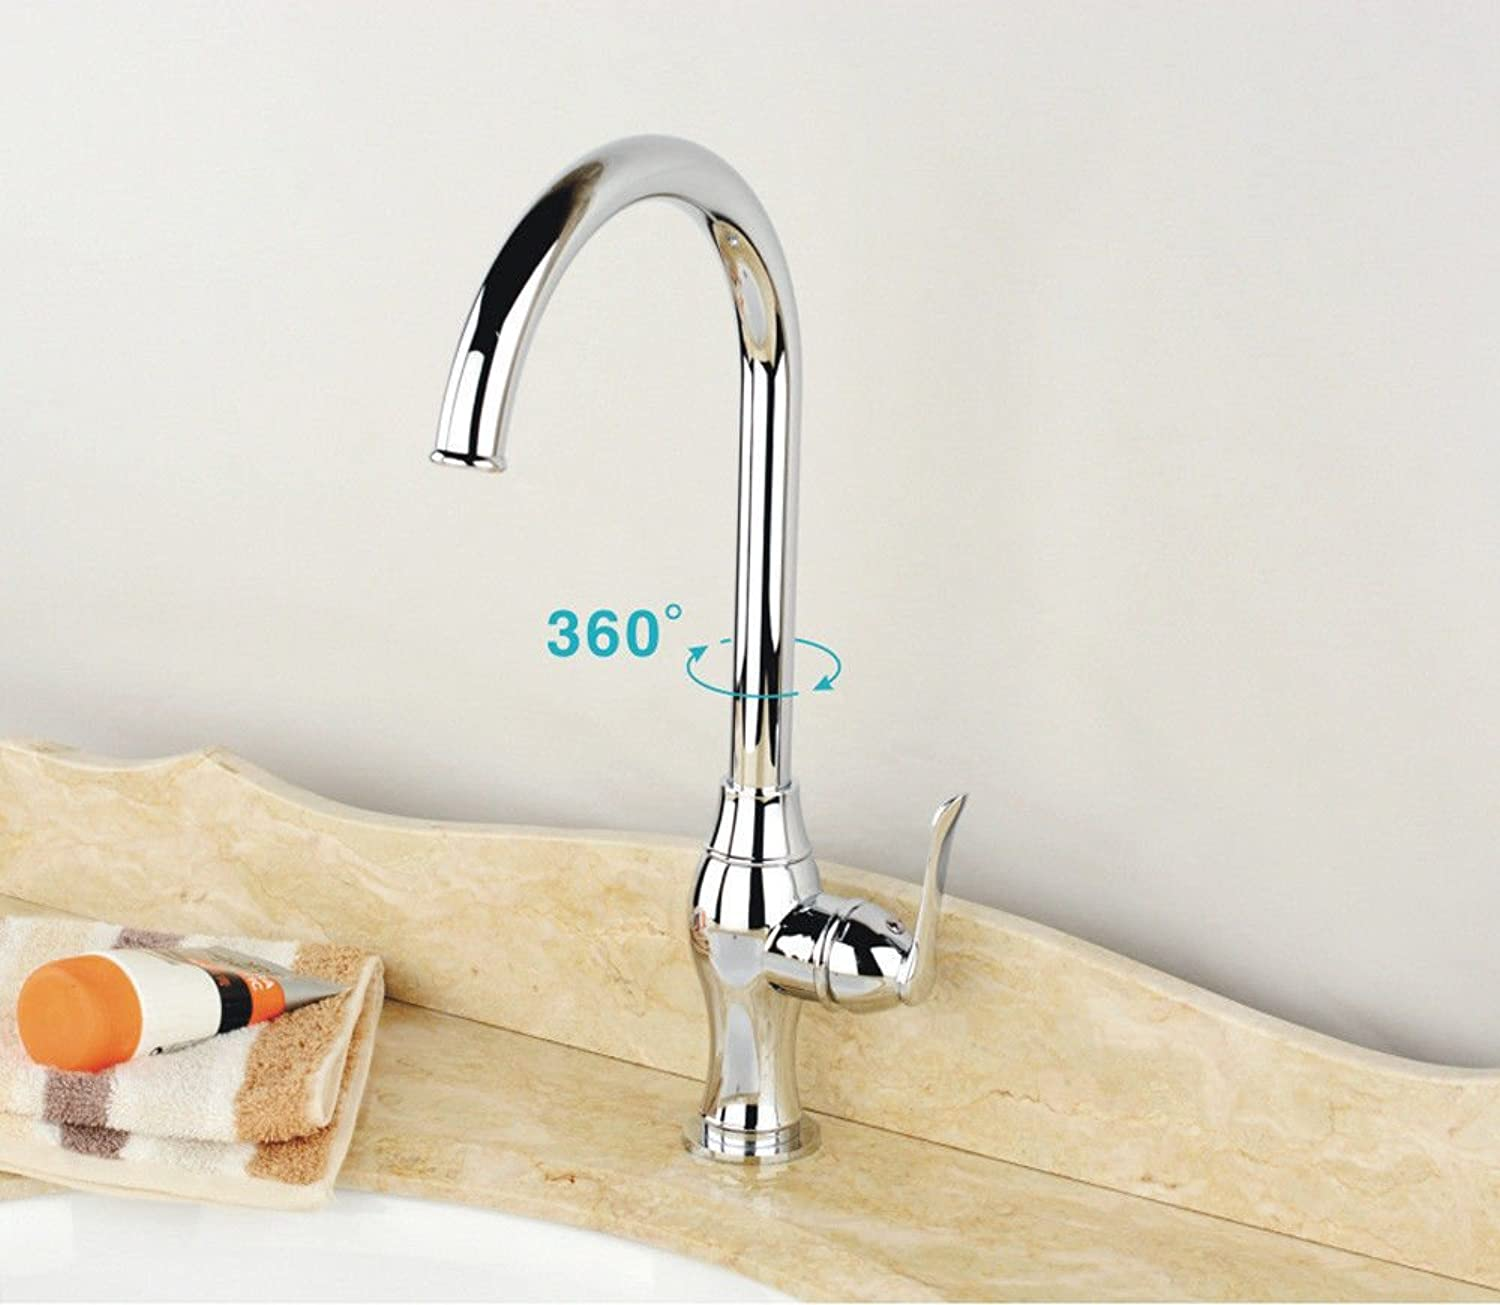 Commercial Single Lever Pull Down Kitchen Sink Faucet Brass Constructed Polished European Modern 360 Degree redating Basin Faucet Hot and Cold Kitchen Faucet Bathroom Sink Faucet